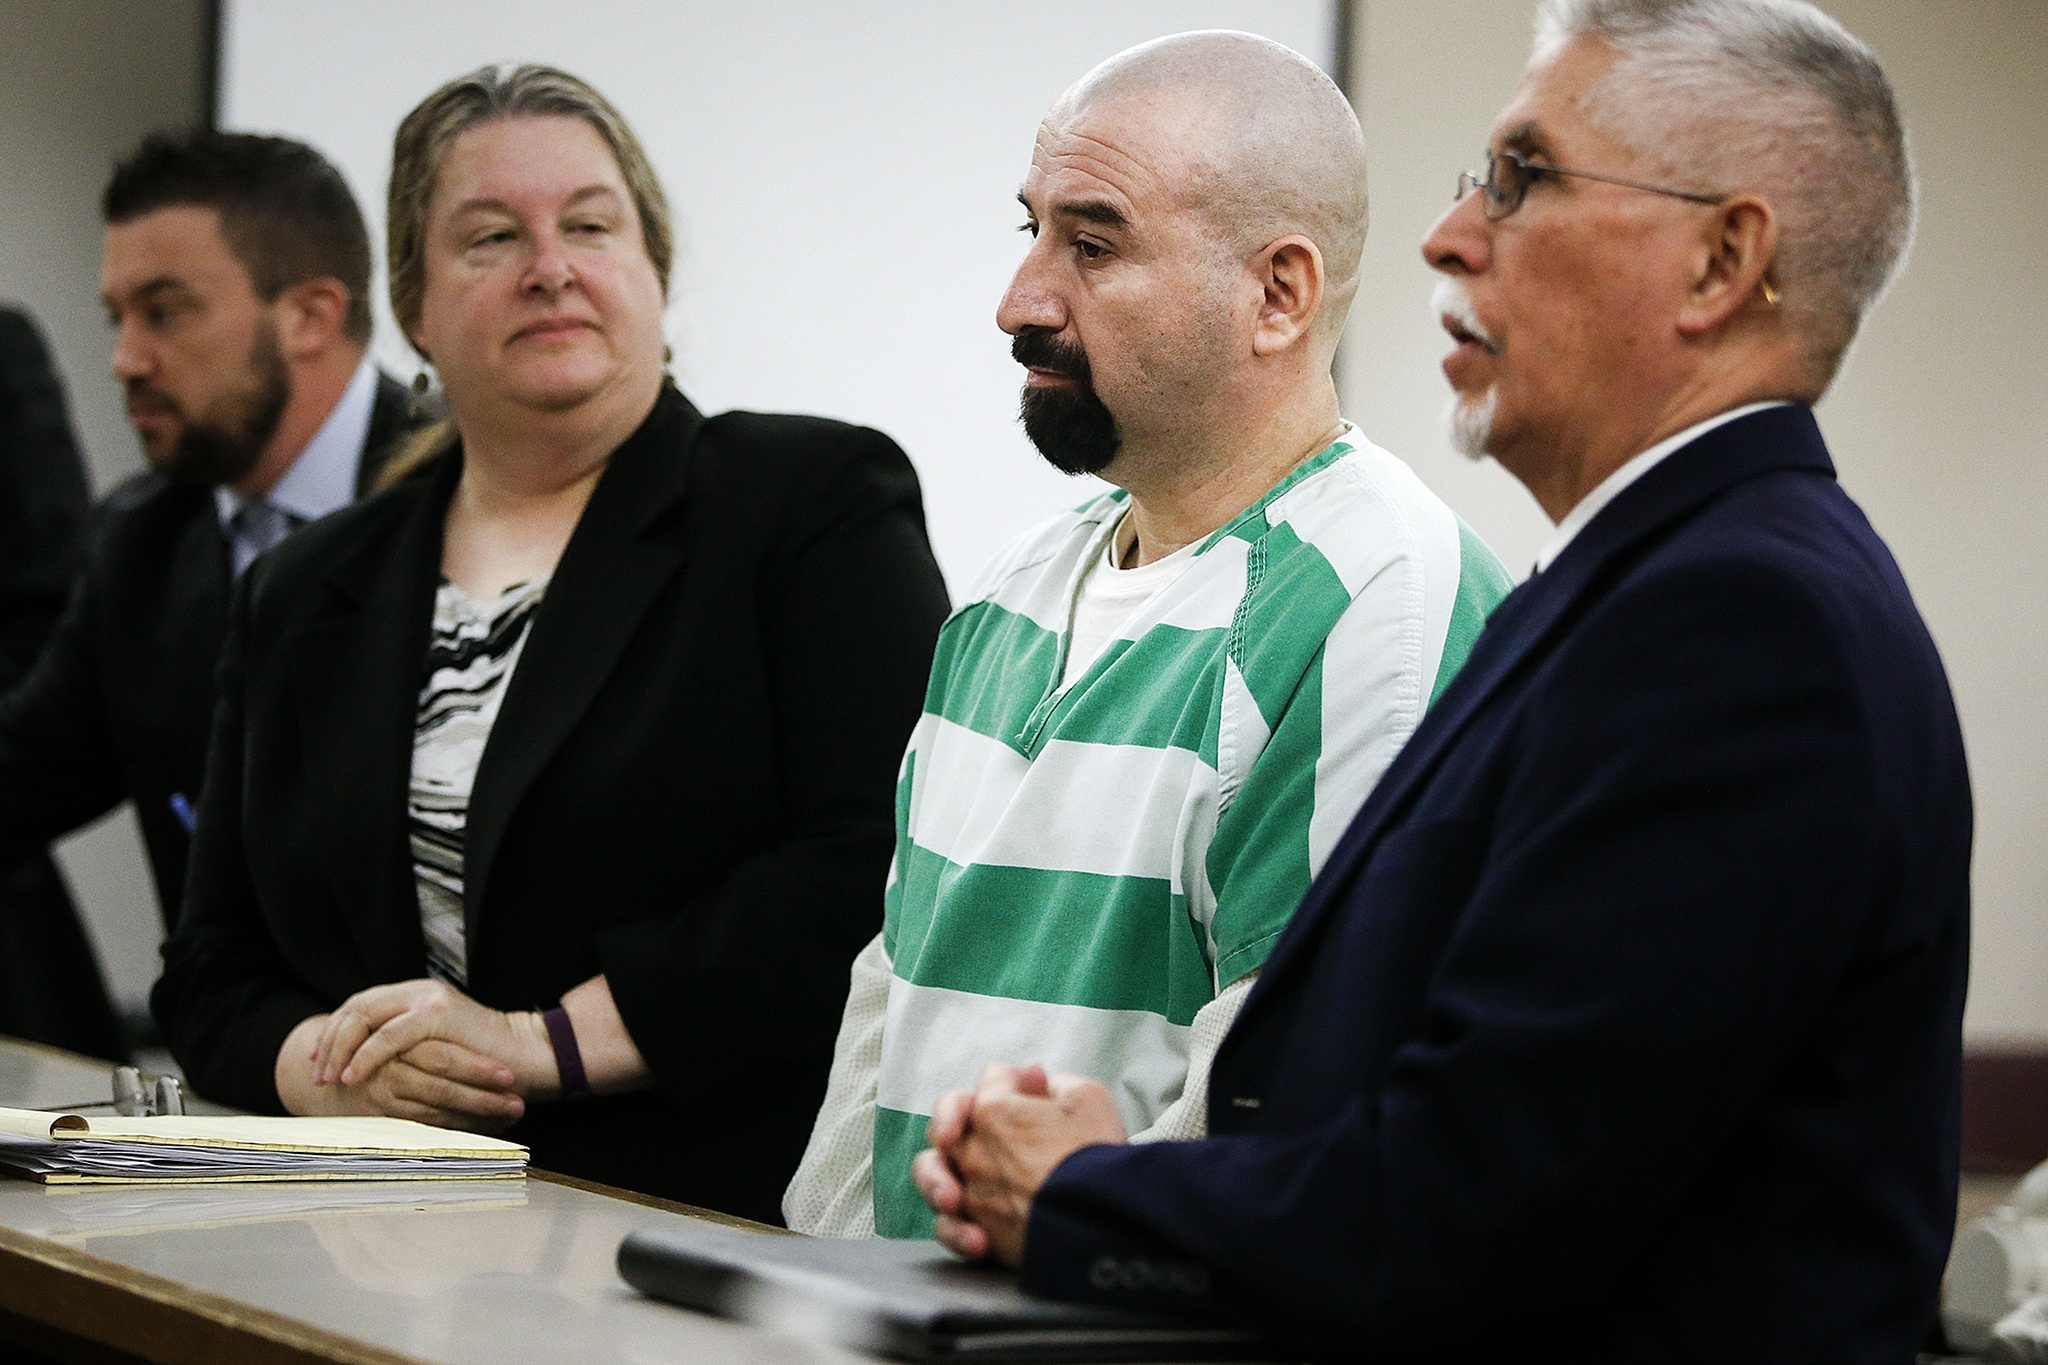 Alexander Sandoval-Ortiz appears at a sentencing hearing at Snohomish County Superior Court in Everett on Wednesday. Sandoval-Ortiz was given a 35-year prison sentence for killing Carlos Lara-Ramos, 28, on June 16, 2015, outside an apartment complex along W. Casino Road in Everett. (Ian Terry / The Herald)